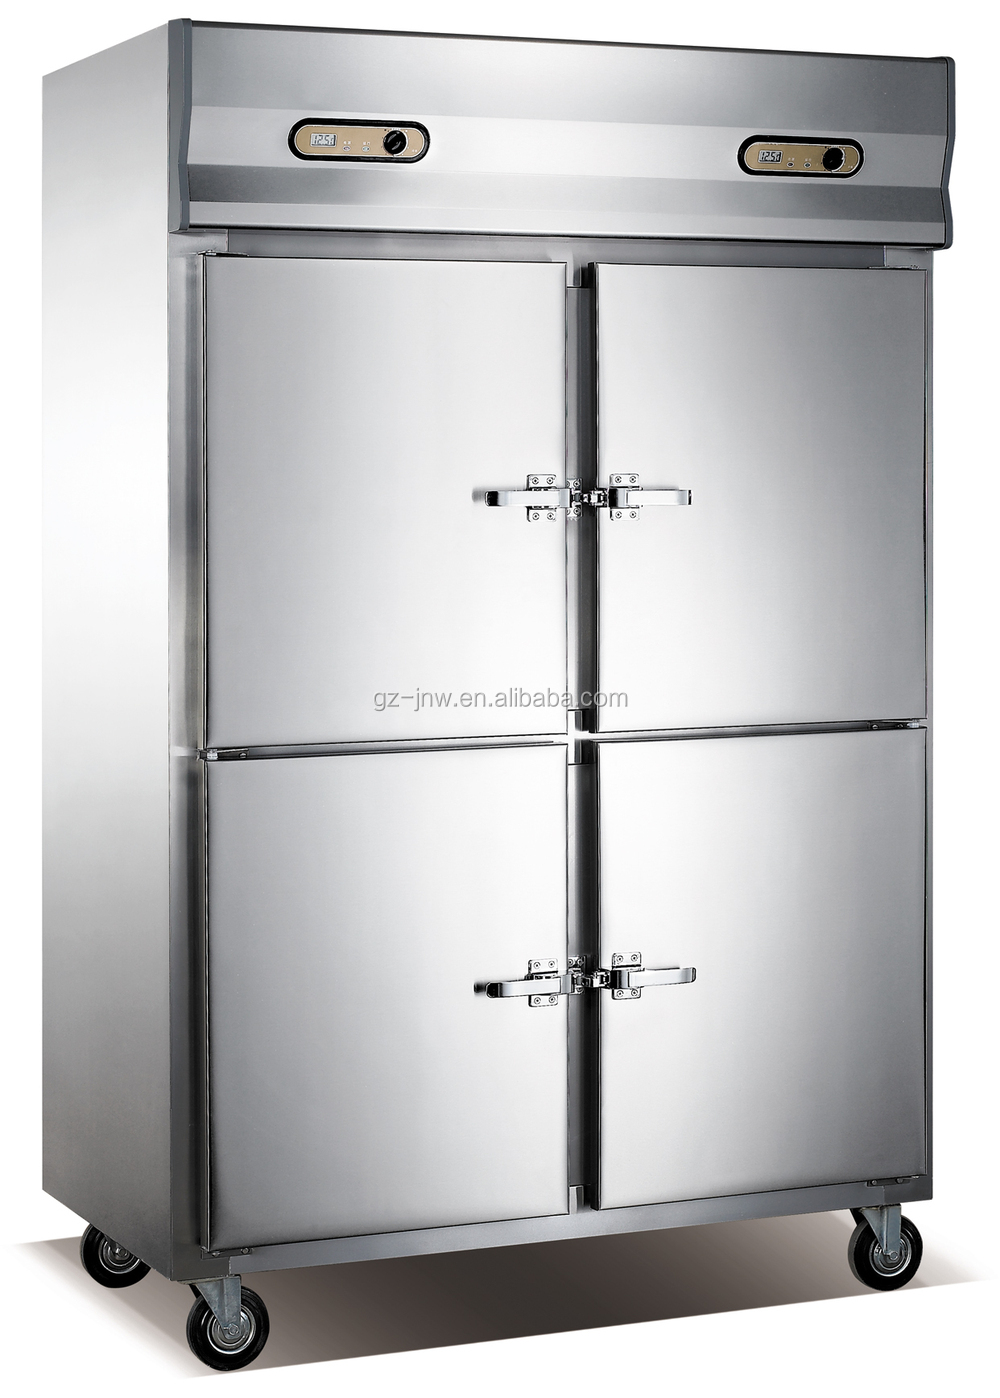 Restaurant Kitchen Refrigerator commercial kitchen freezer/ kitchen equipment for restaurant - buy